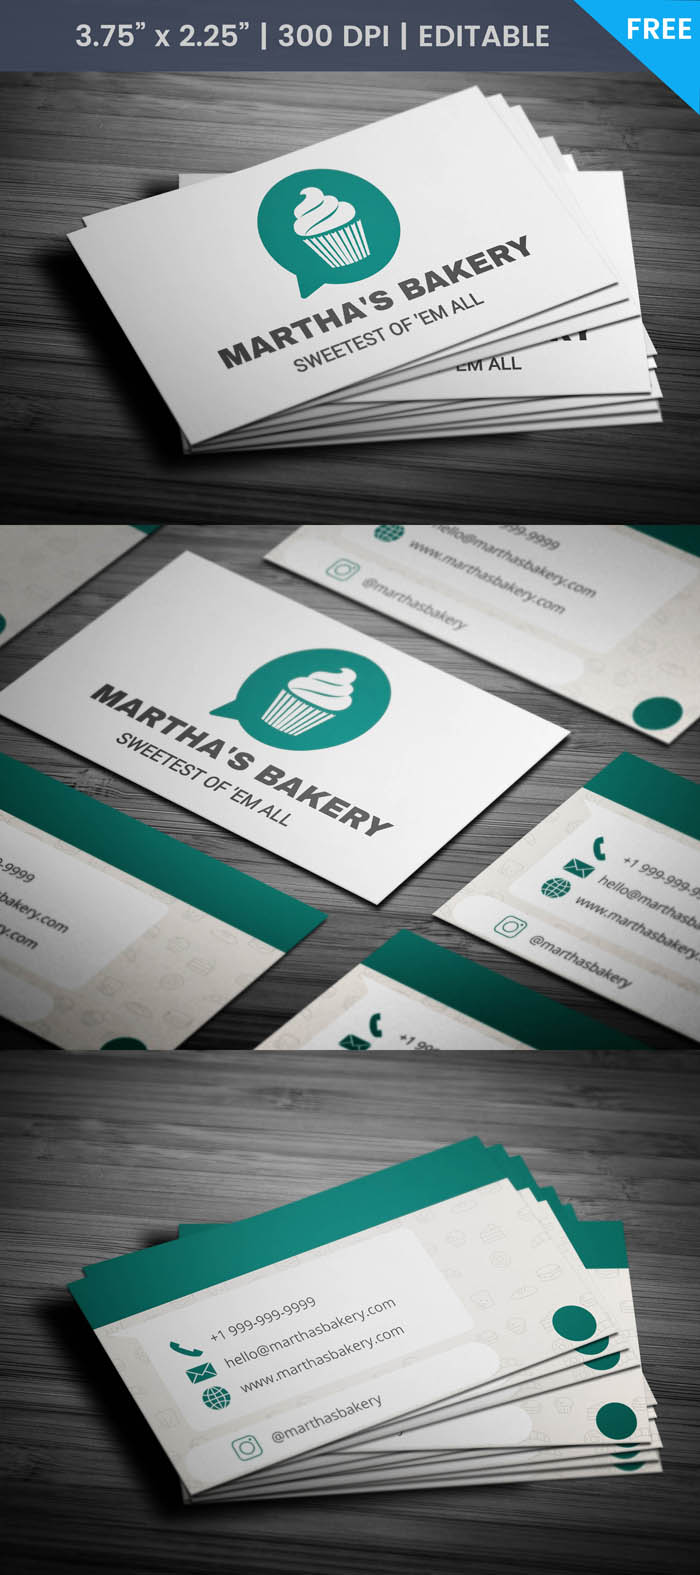 Free Whatsapp Themed Bakery Business Card Template